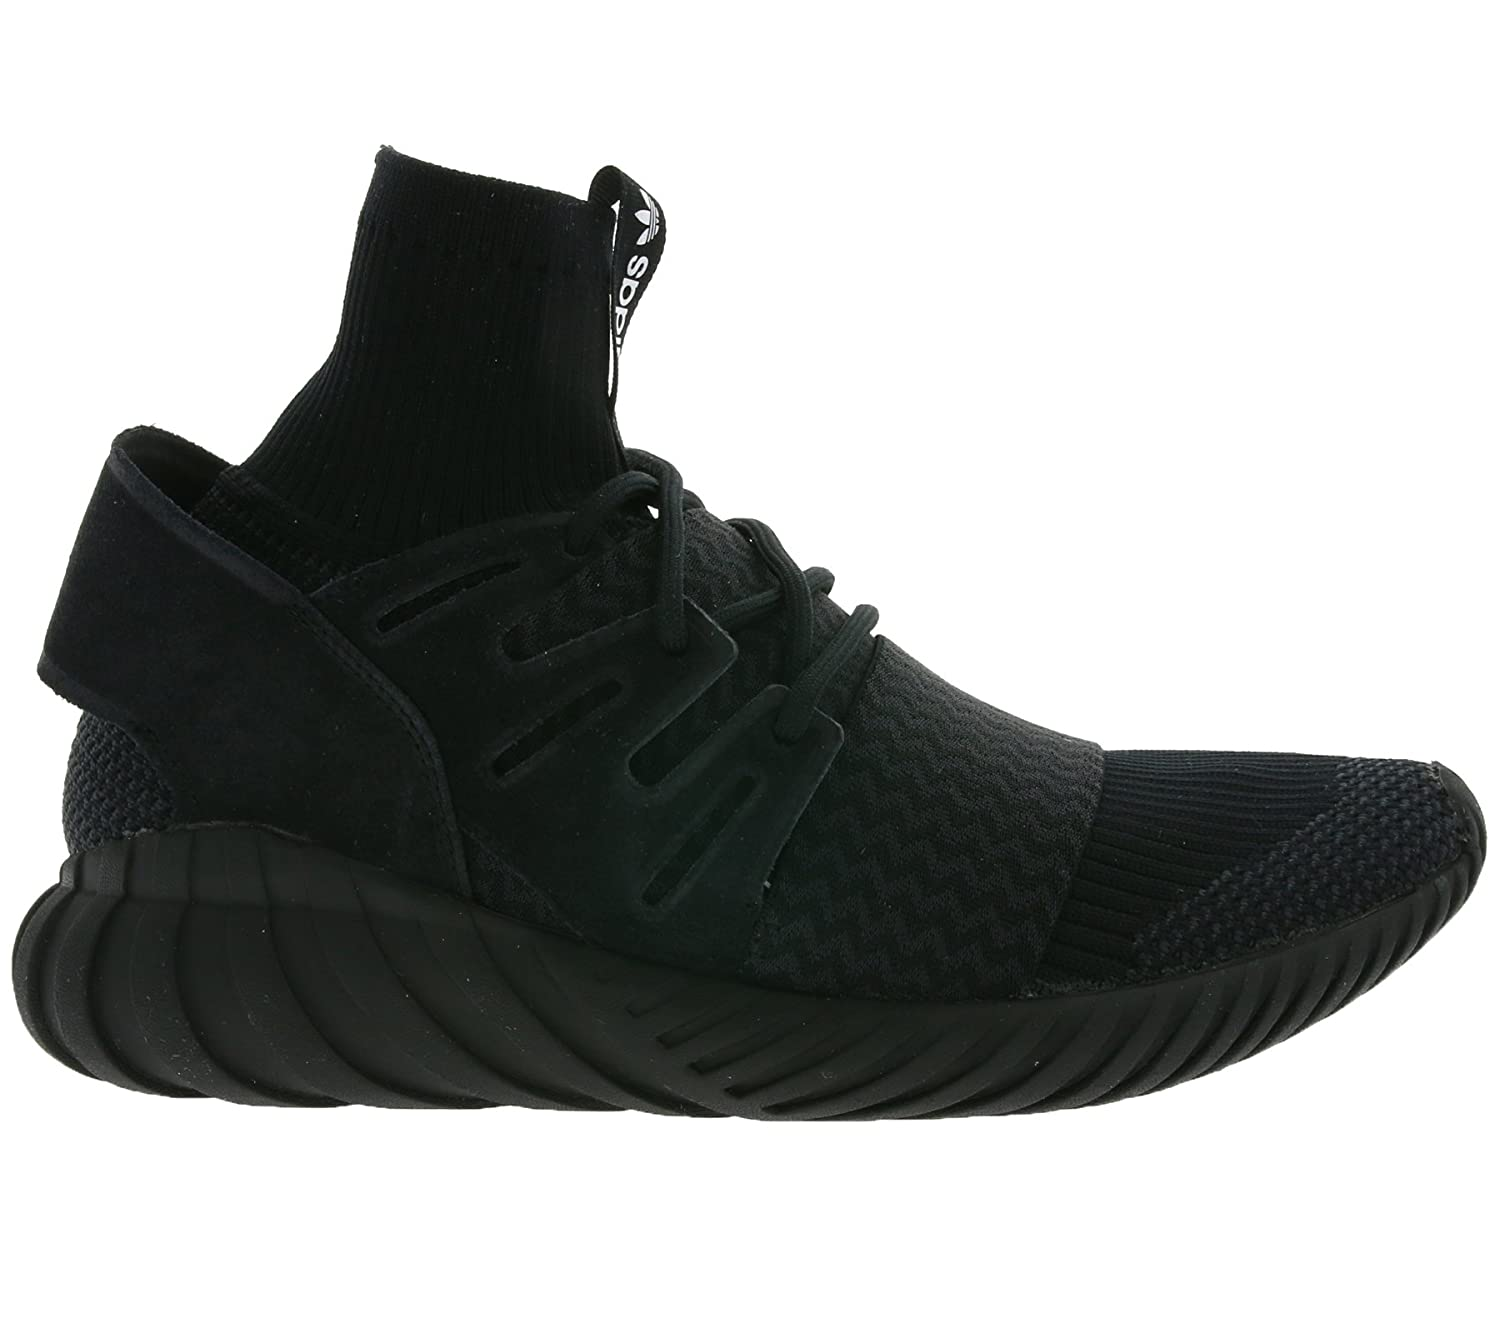 fe99699572b2 Adidas Tubular Doom PK Black Sneakers with collar and elastic band   Amazon.co.uk  Shoes   Bags